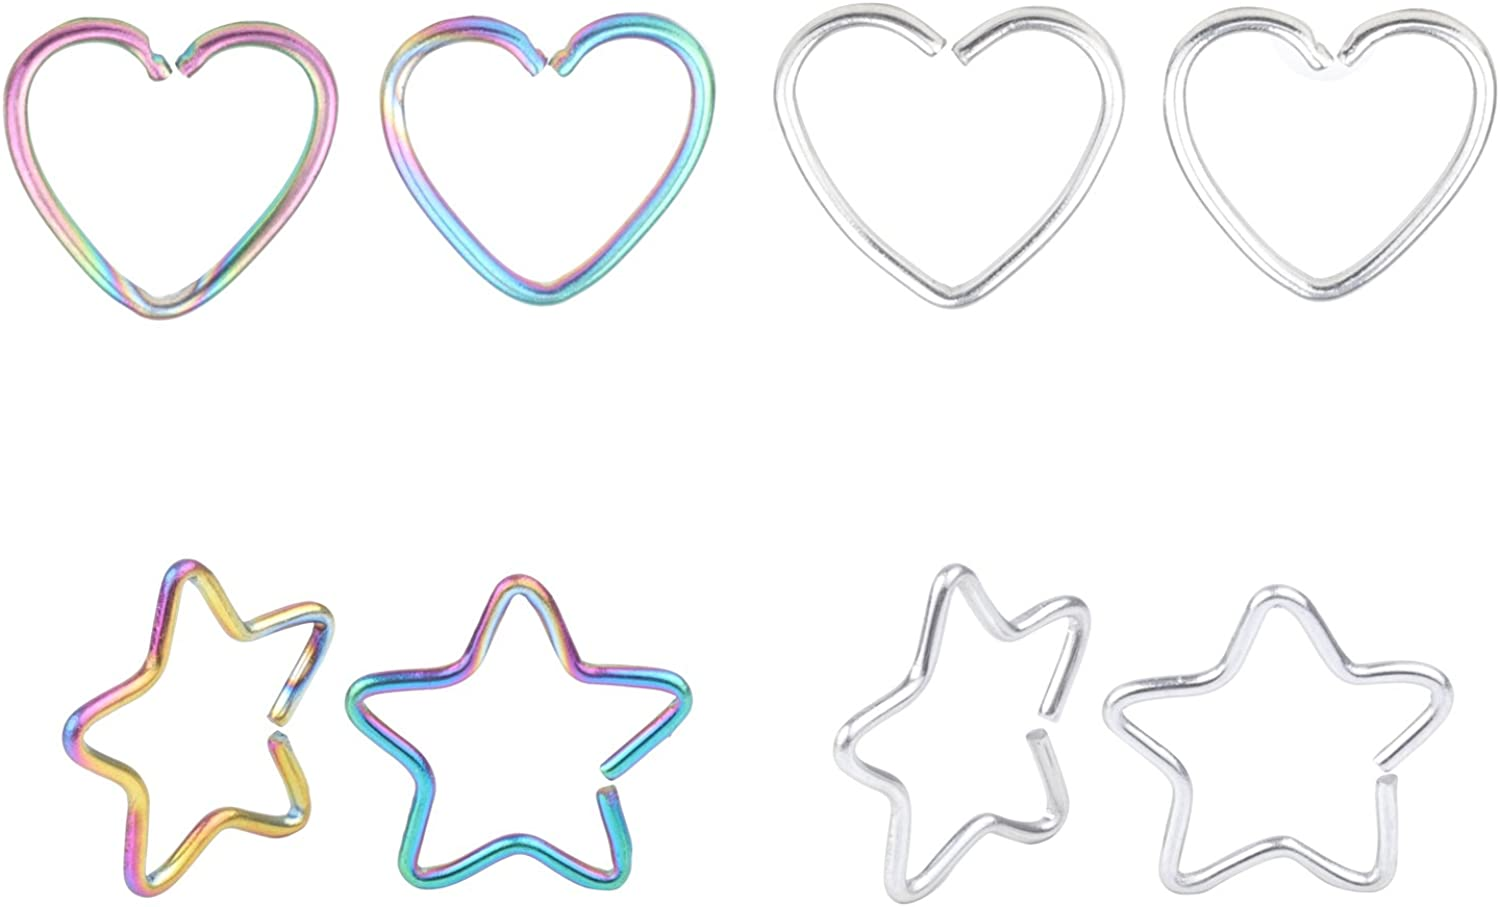 Feiyan 20G 8pcs Surgical Steel Heart Star Clip on Closure Daith Ring Fake Nose Lip Tragus Cartilage Earring Piercing Jewelry